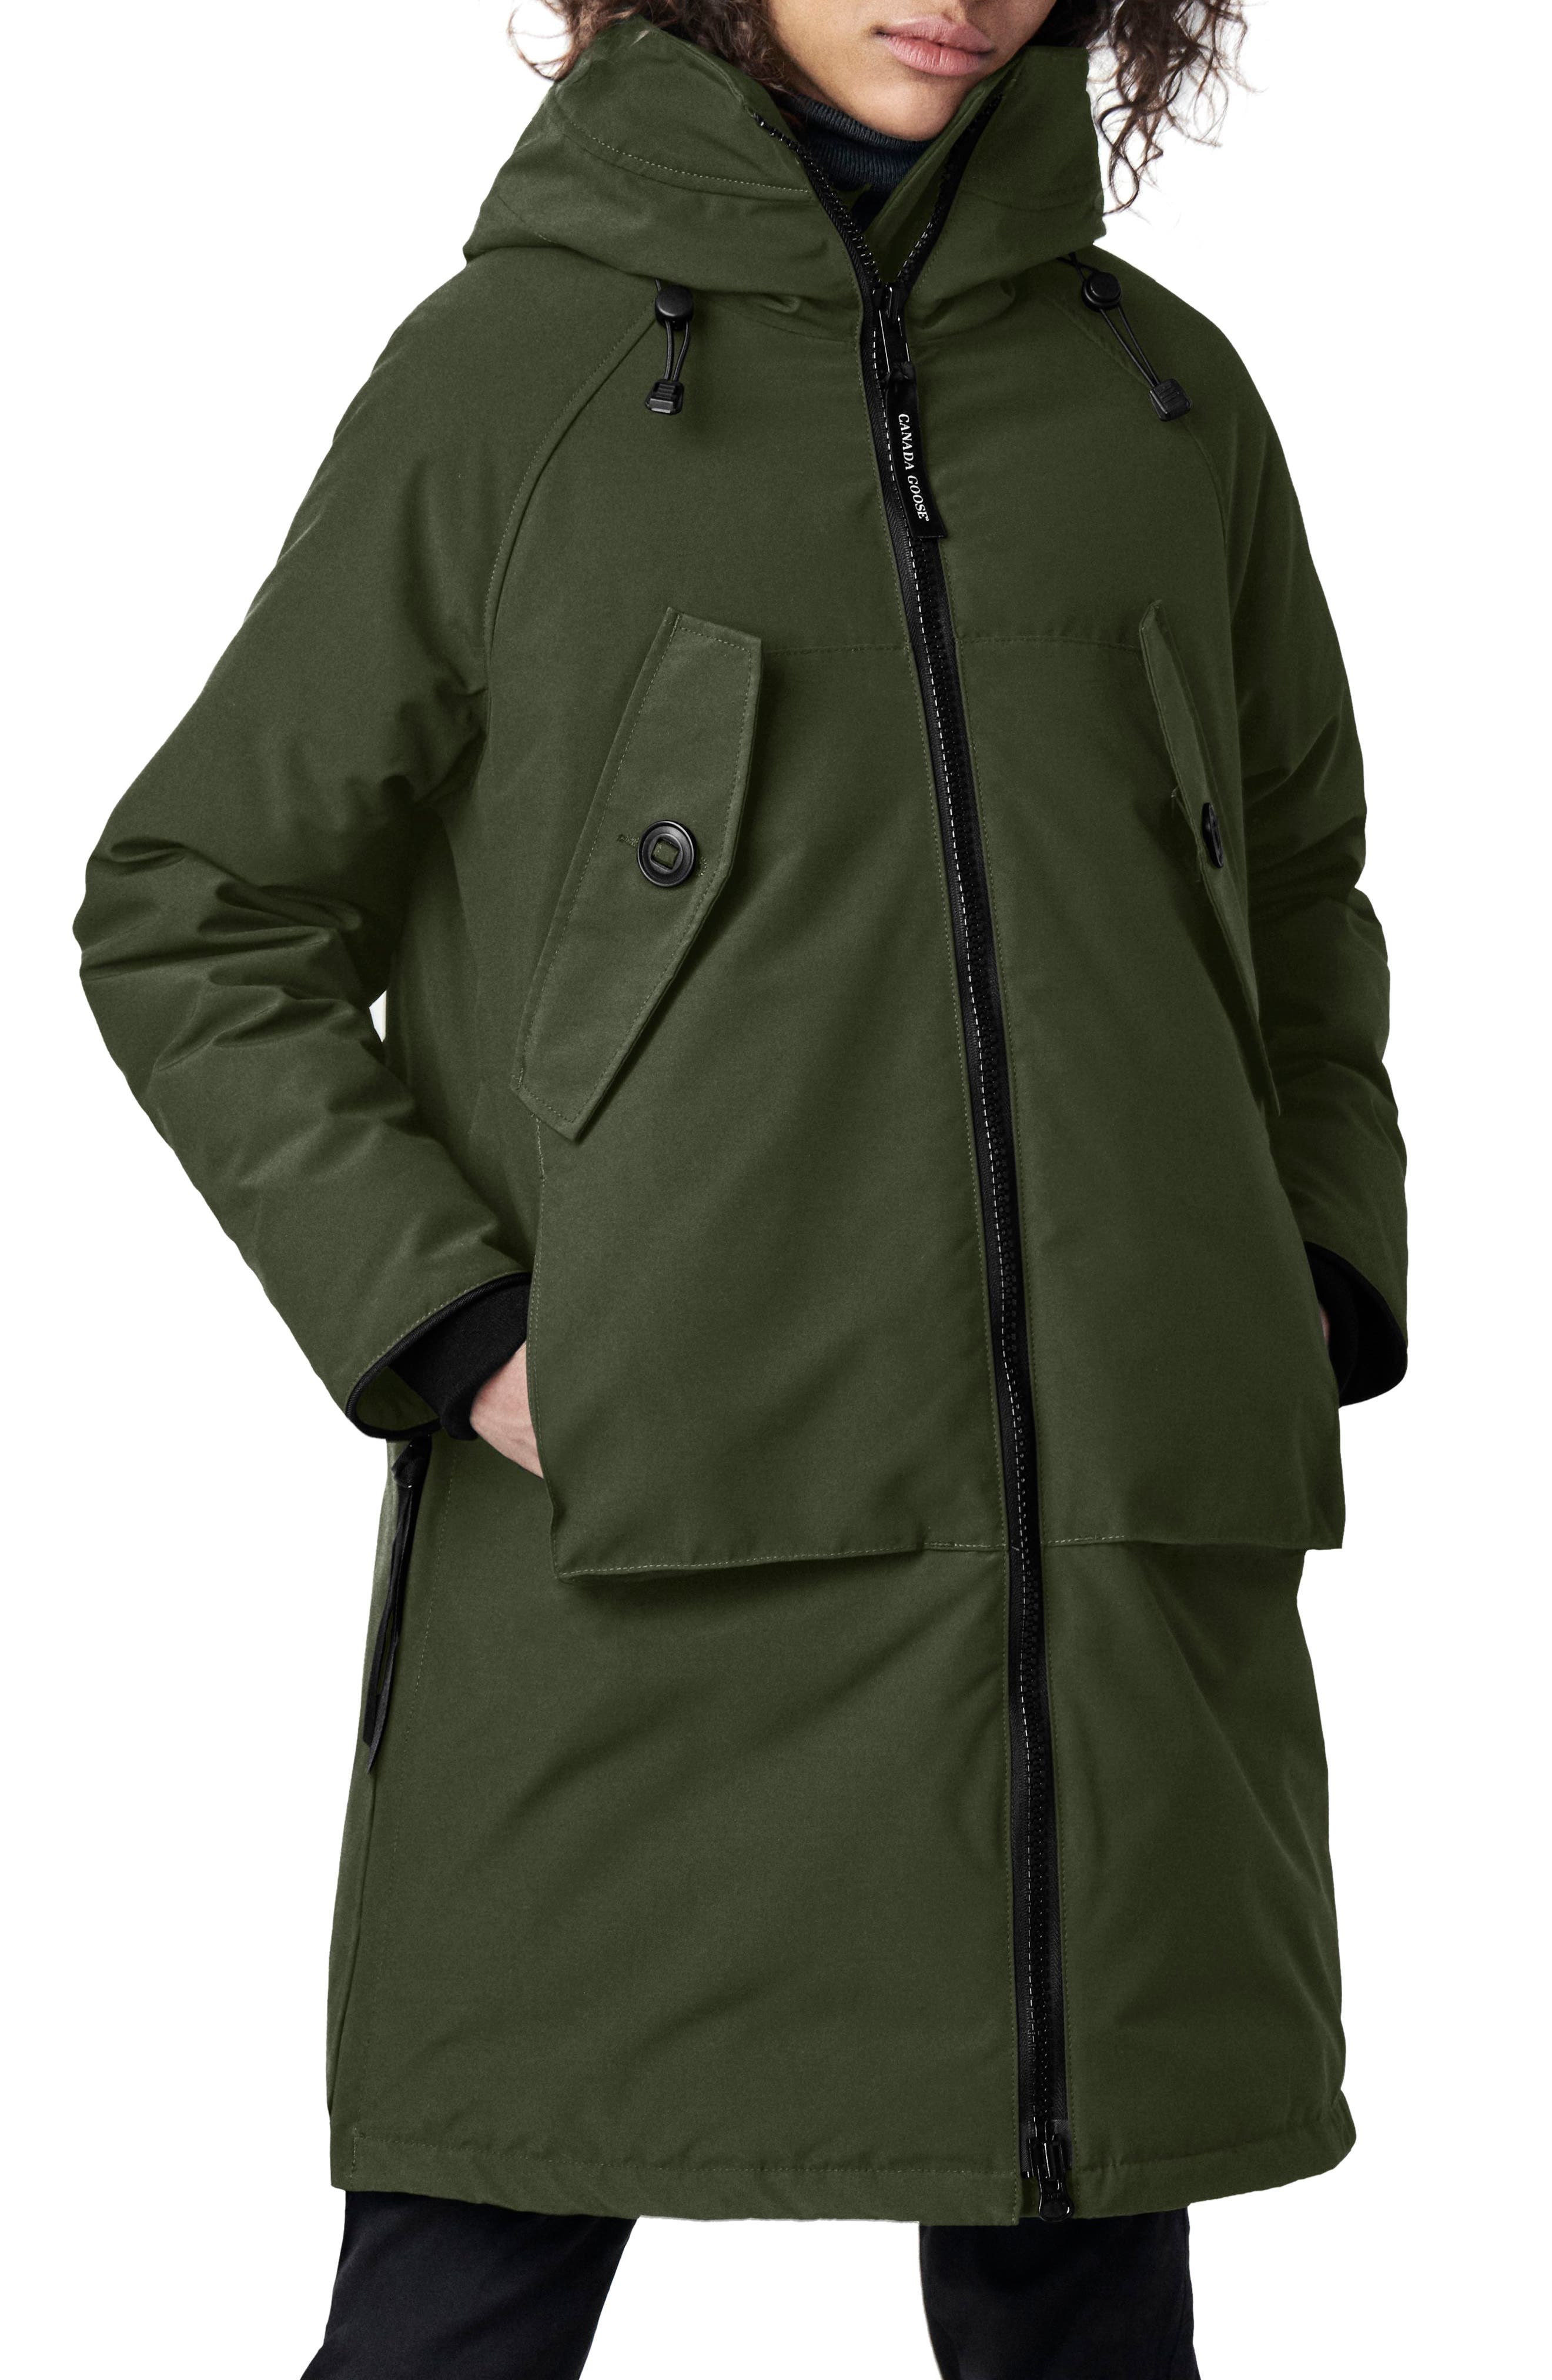 Canada Goose Olympia Down Parka, (2-4) - Green